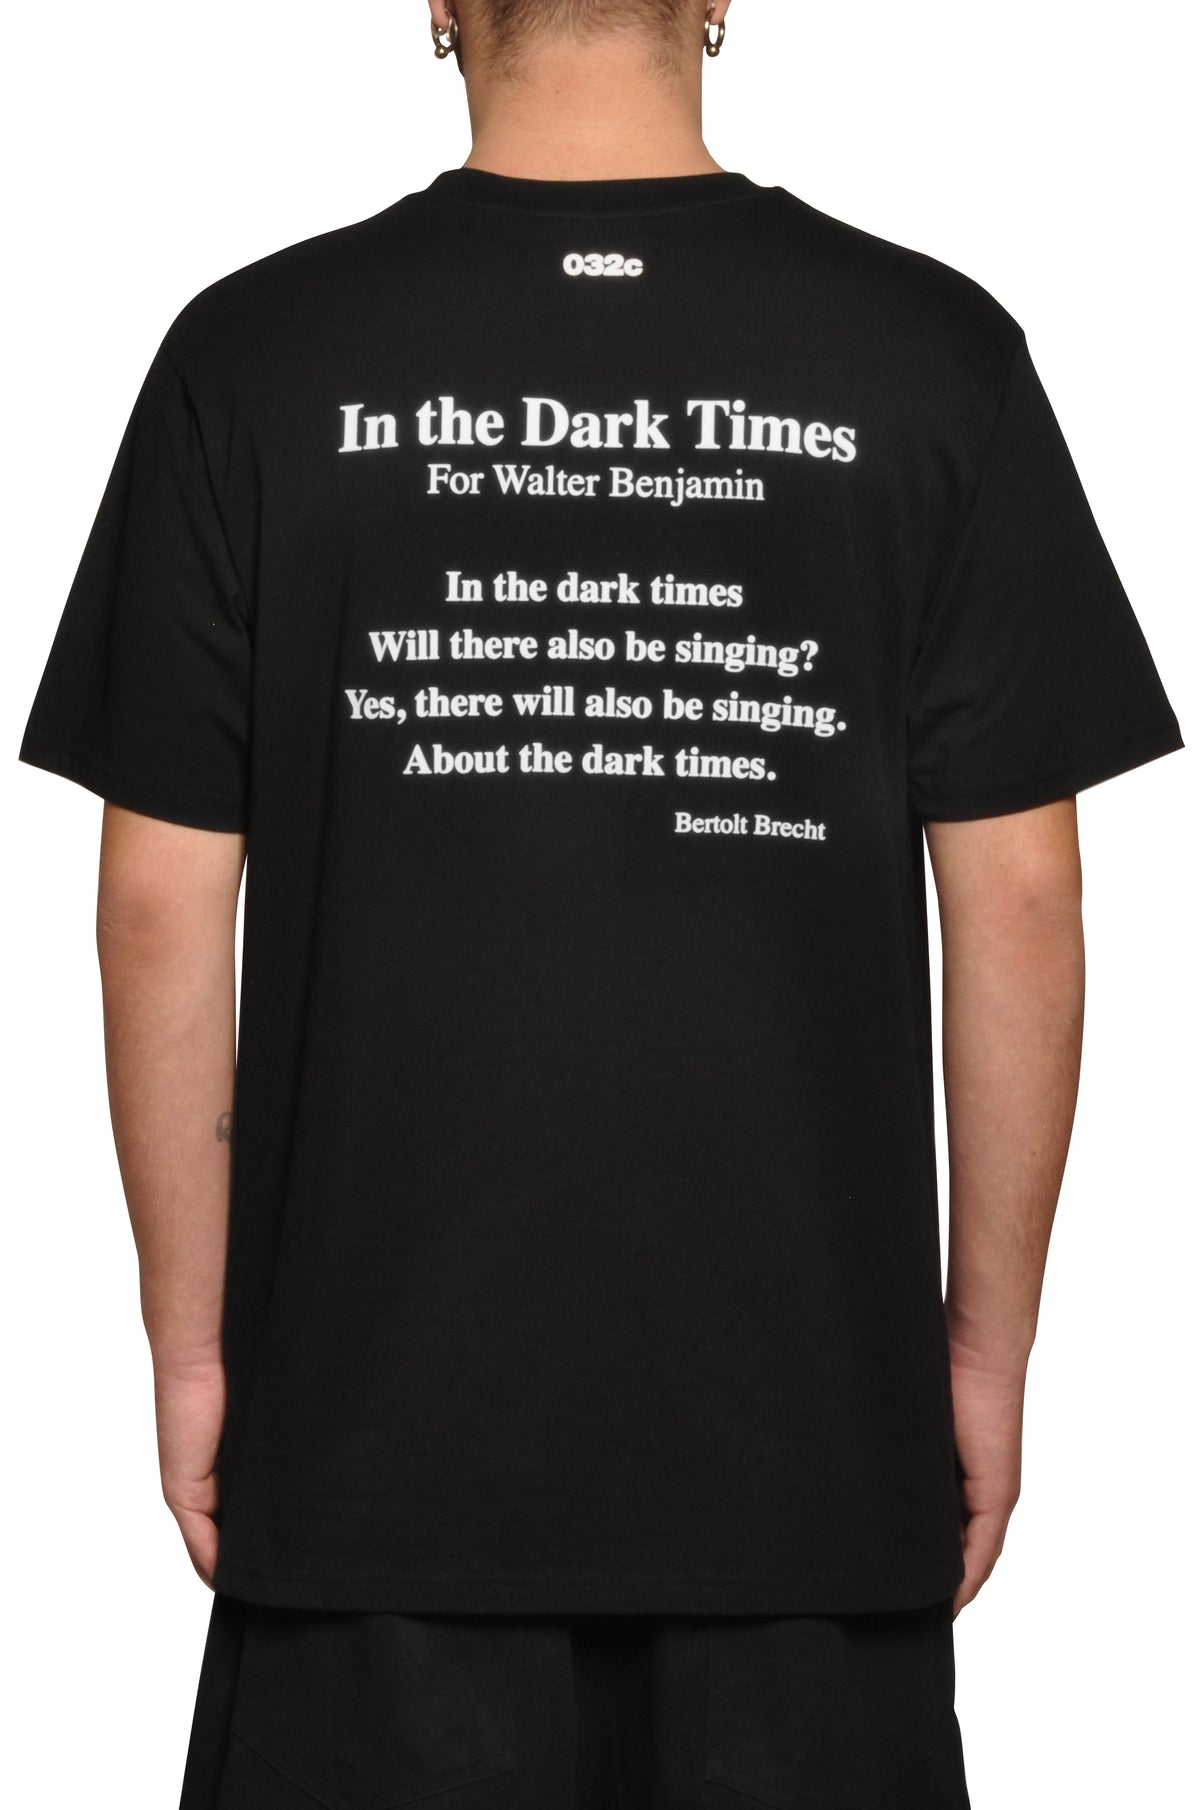 "032c ""Dark Times"" Brecht T-Shirt Black - 032c"